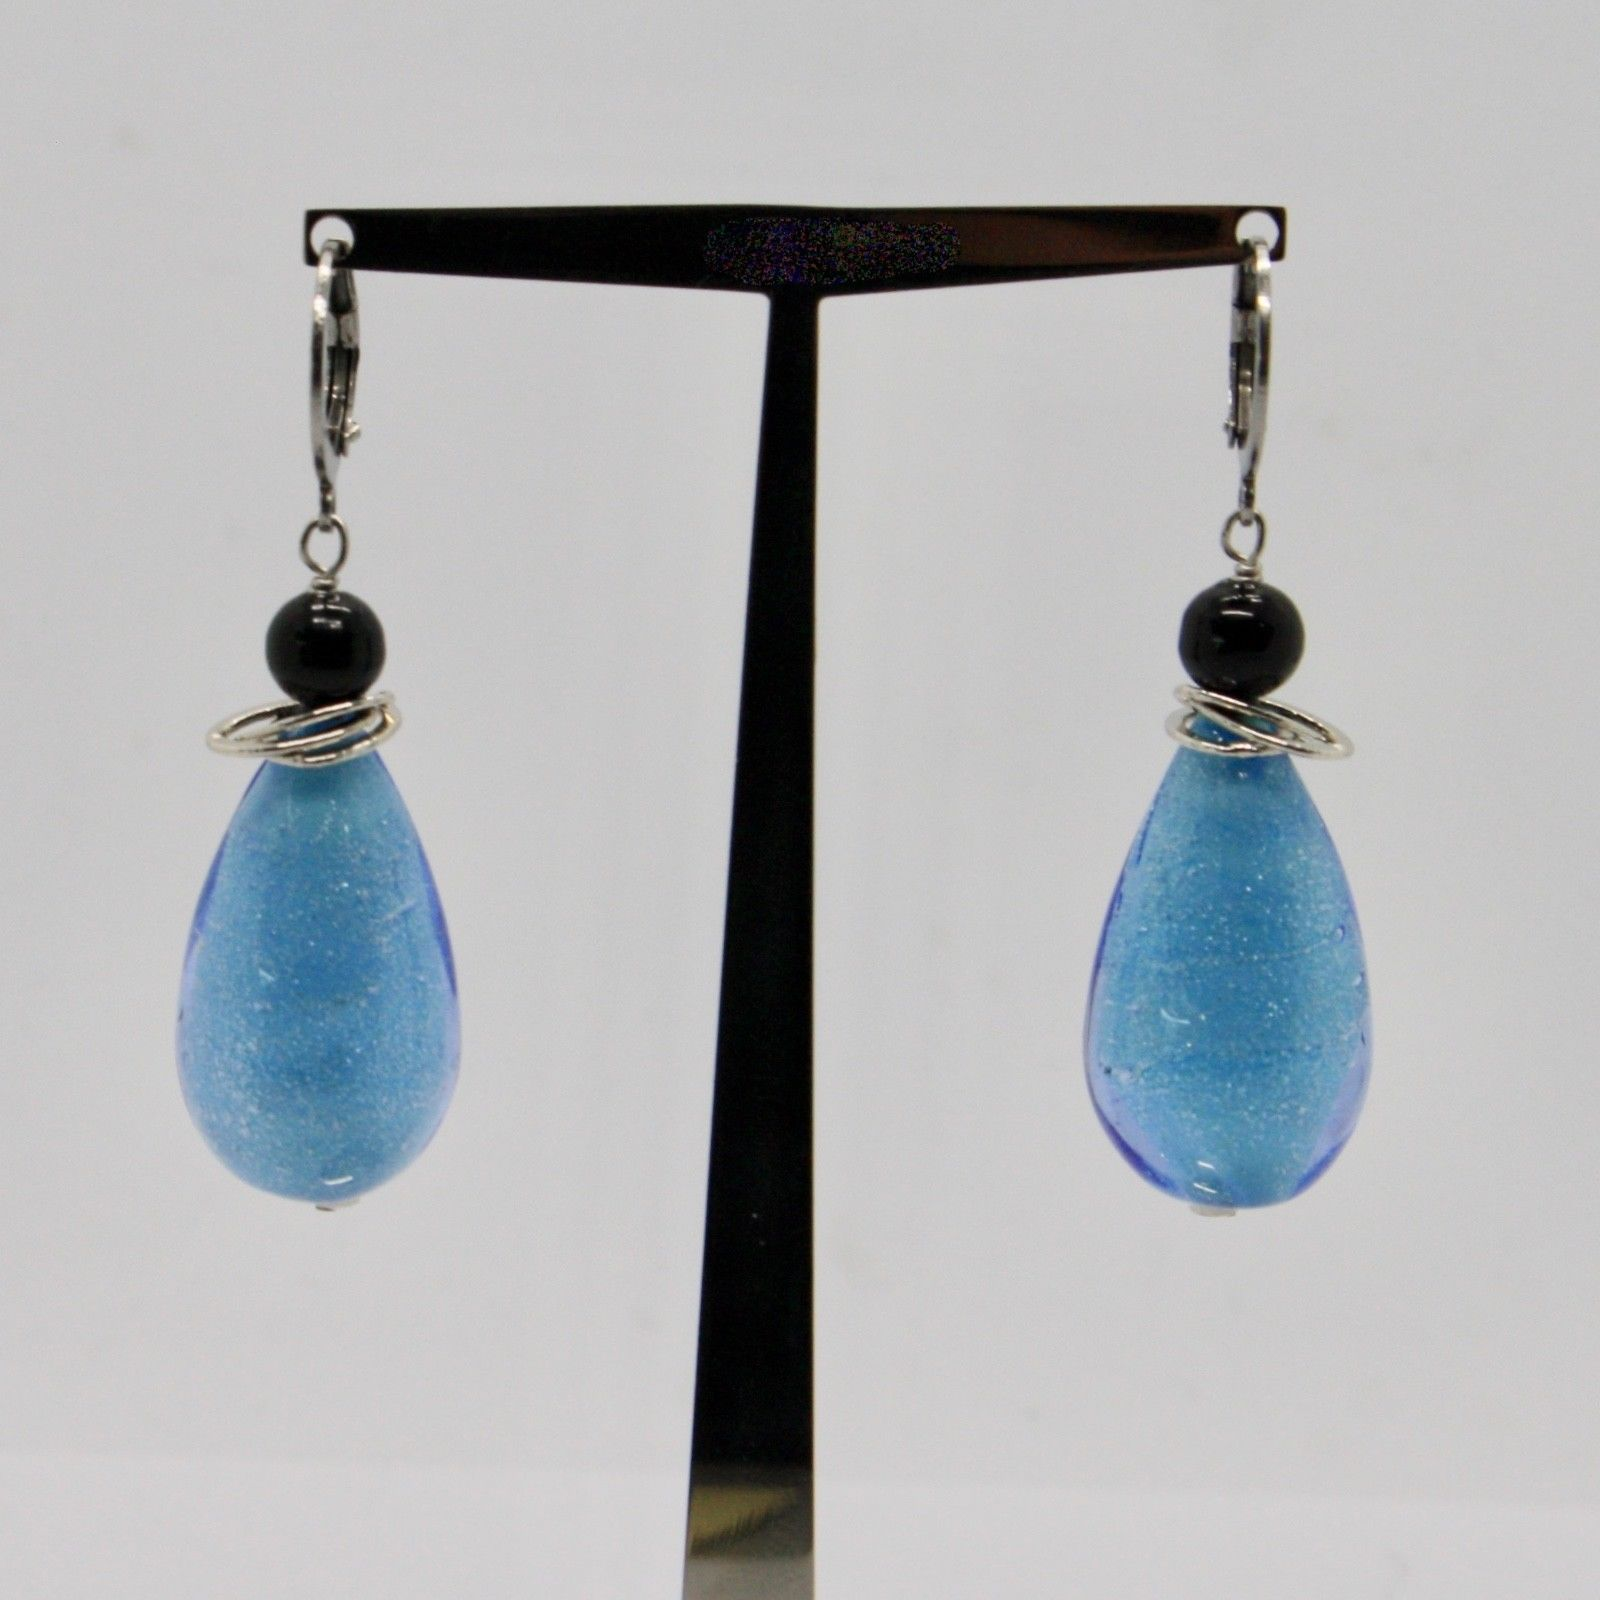 EARRINGS ANTICA MURRINA VENEZIA WITH MURANO GLASS DROP BLUE OR540A07